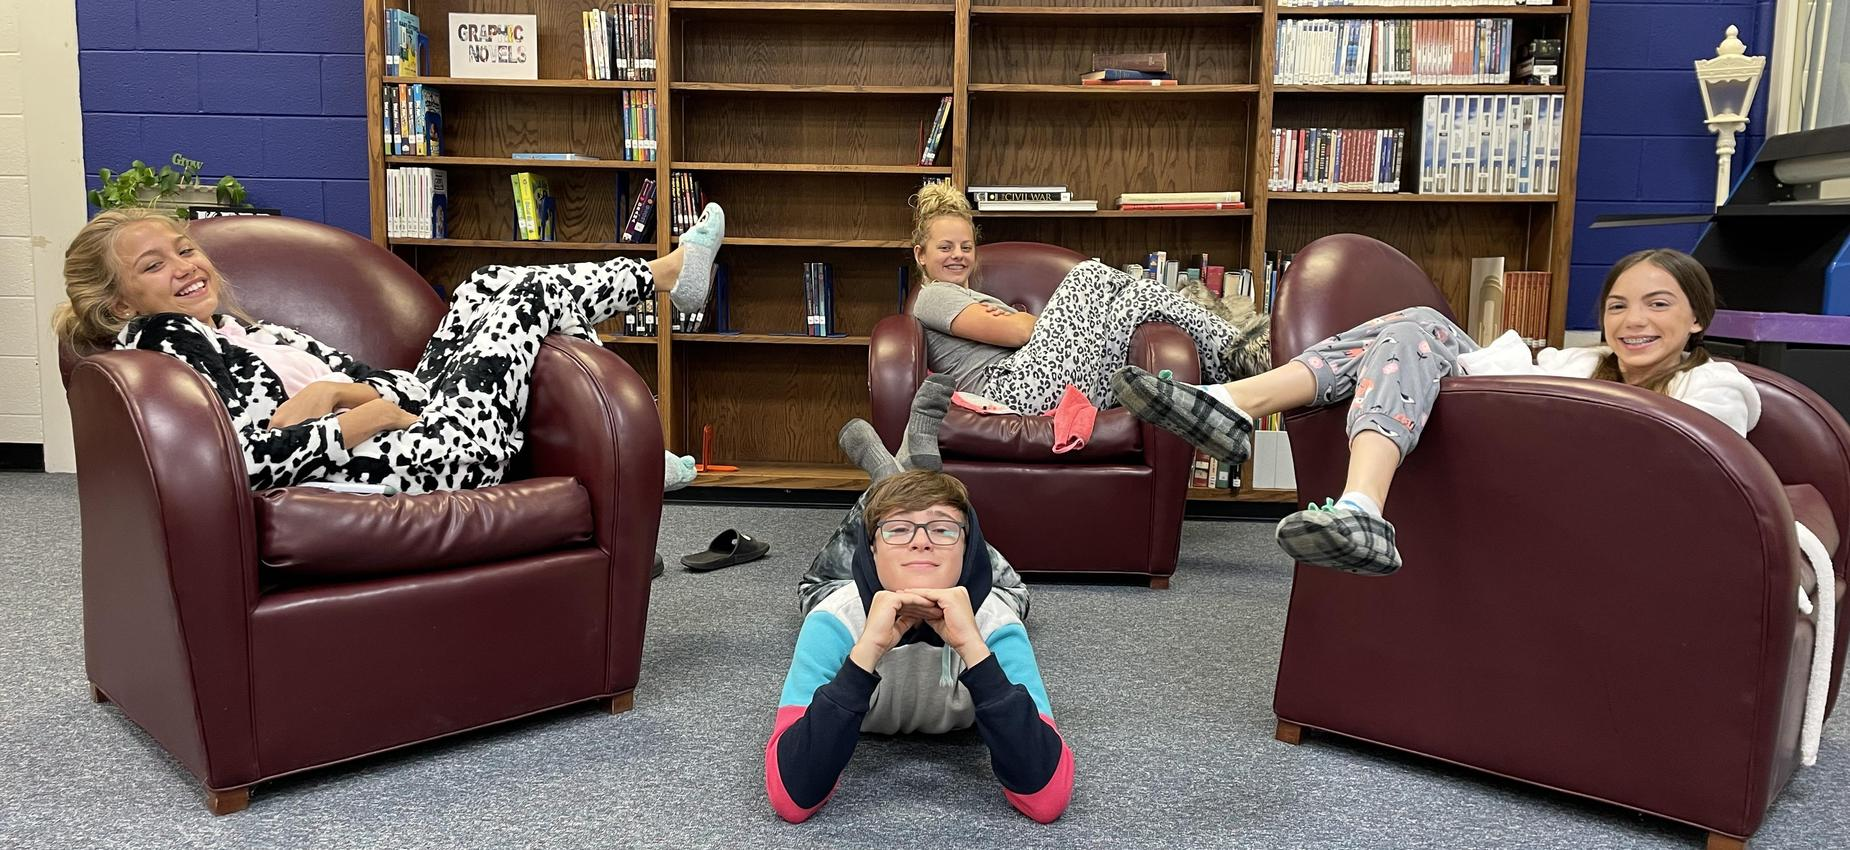 Four students wear pajamas in a library.